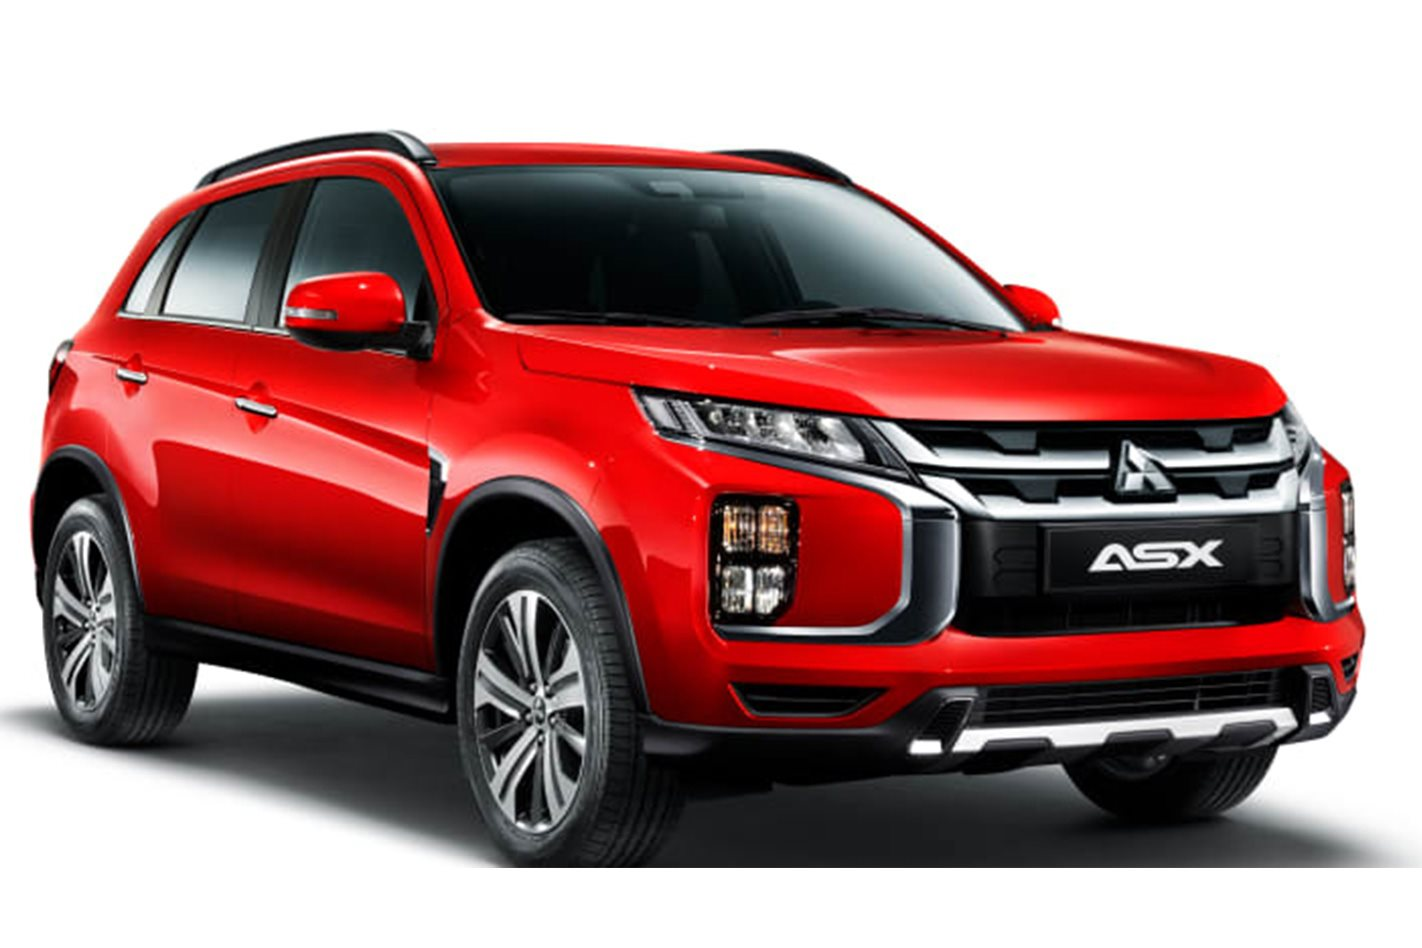 Why The Heck Does Australia Love The Mitsubishi Asx